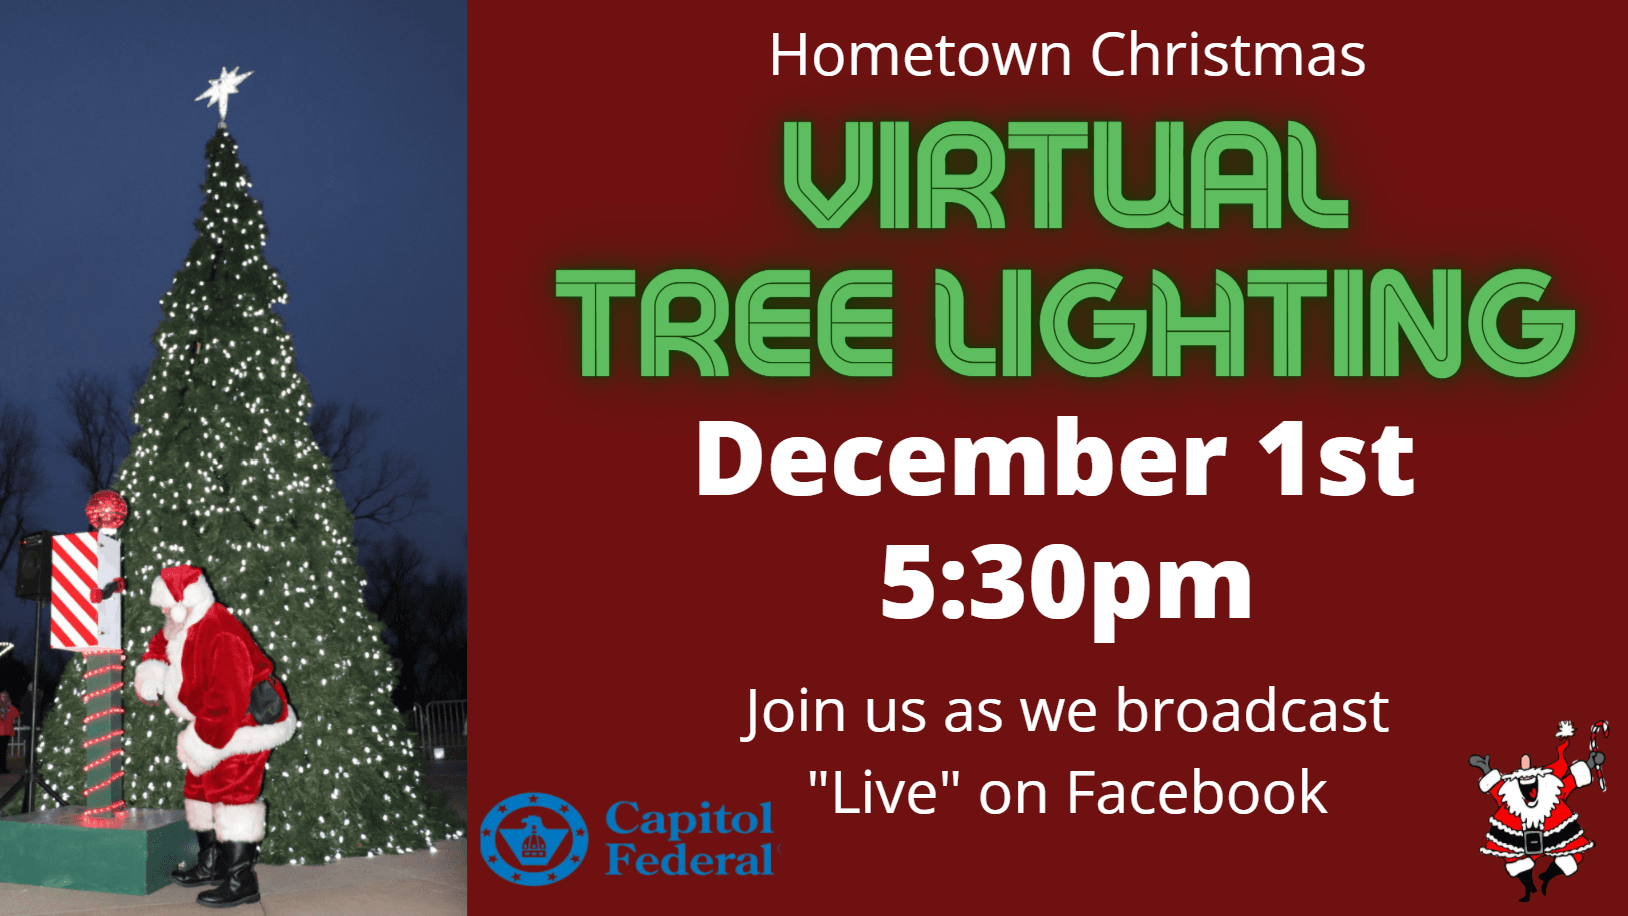 Virtual Tree Lighting Live on Hometown Christmas Facebook Page December 1st at 5:30pm Opens in new window